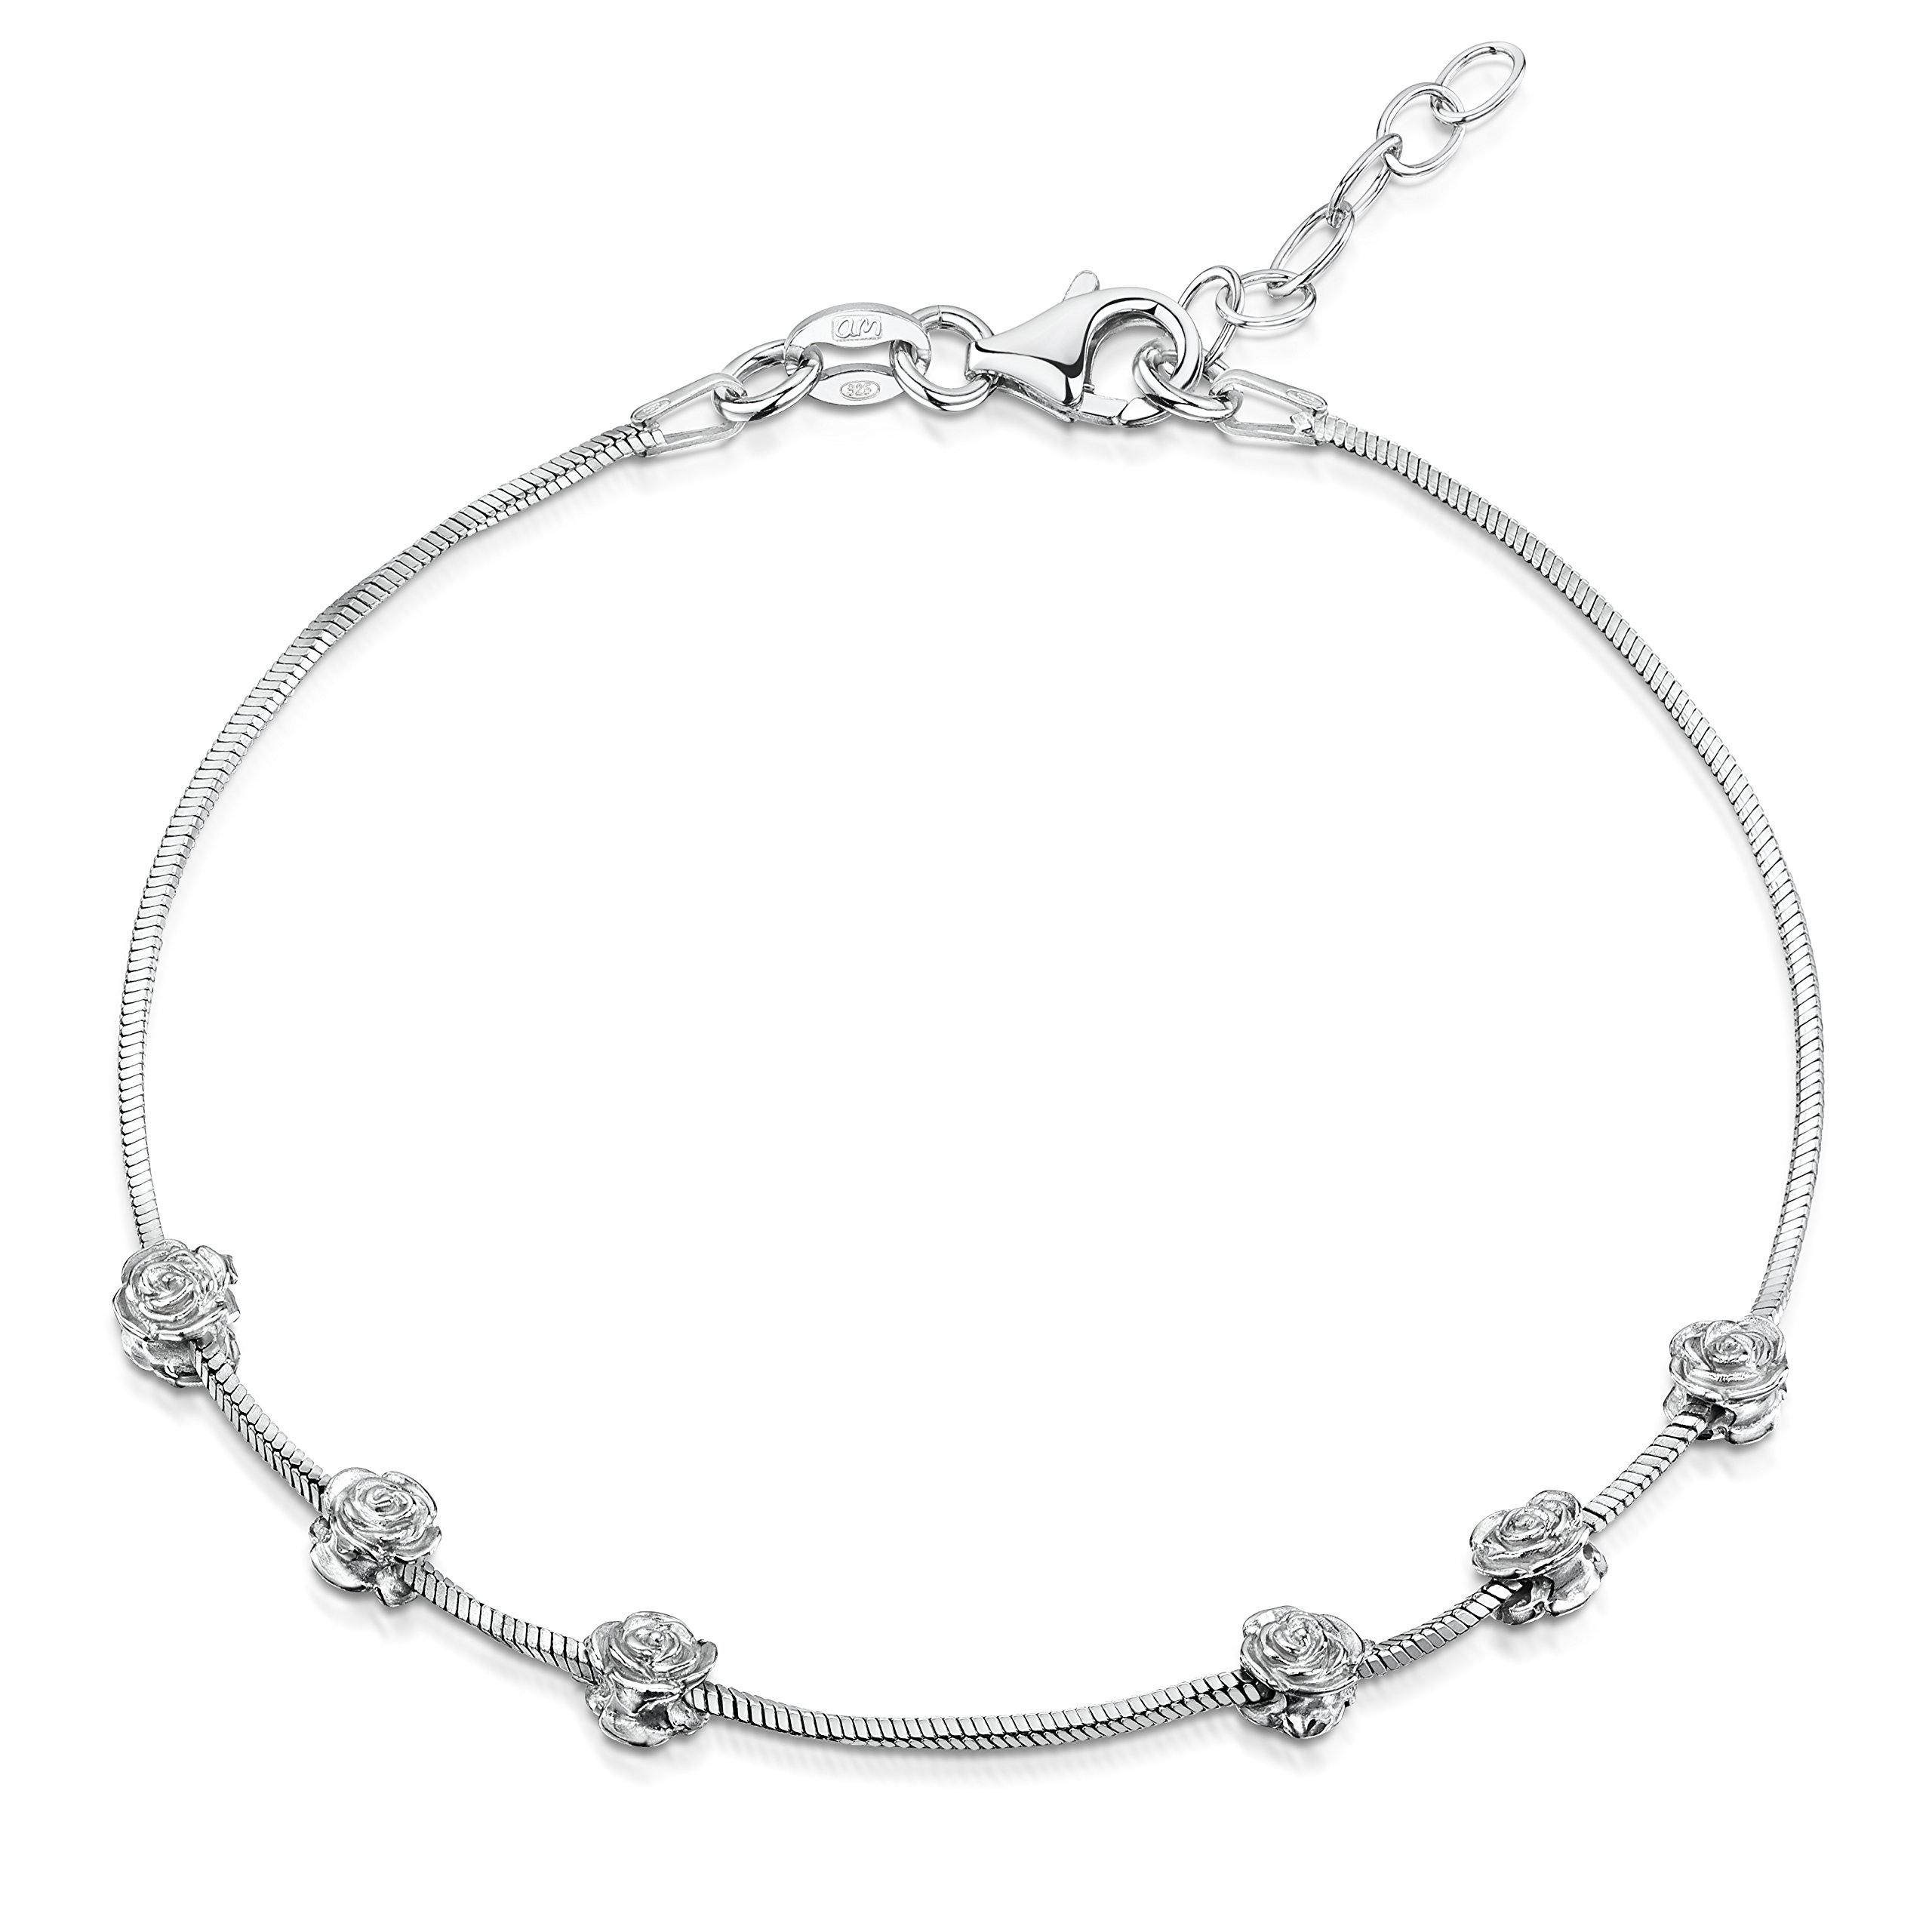 Amberta 925 Sterling Silver Adjustable Ankle Bracelet - 1 mm Square Snake Chain Anklet with Rose Beads - 9'' to 10'' inch - Flexible Fit